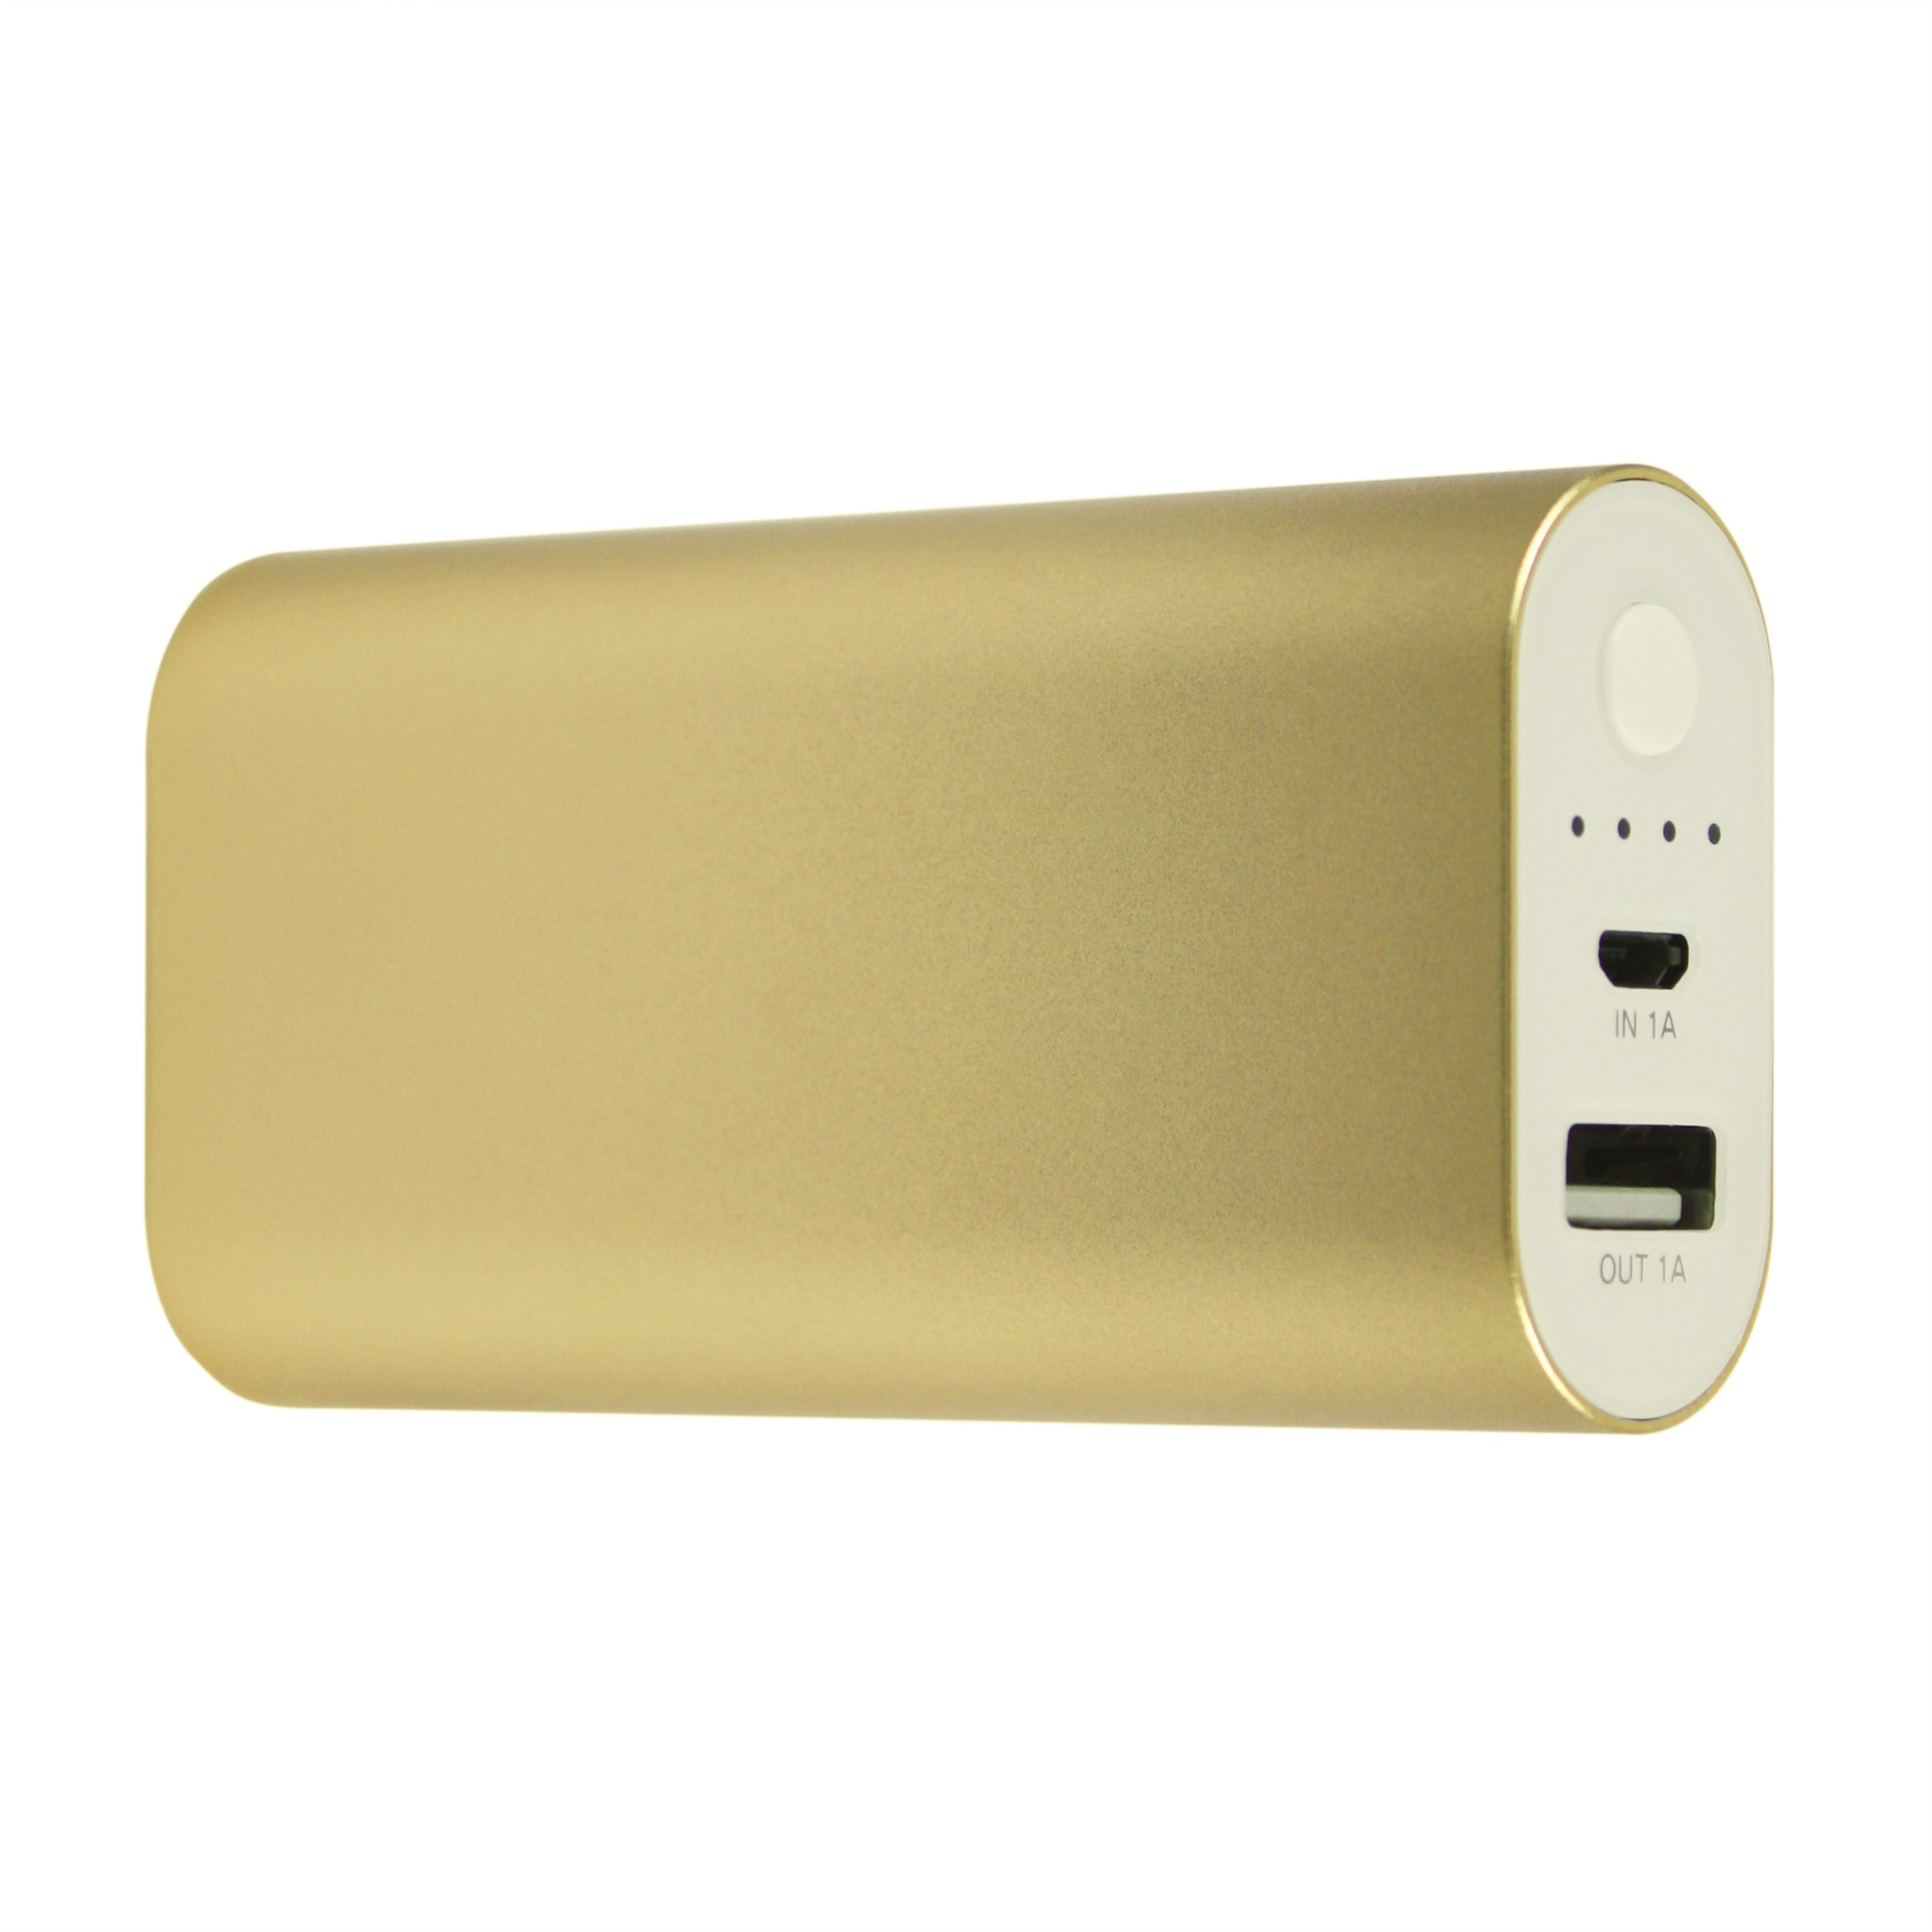 INTRODUCING THE APELPI BAR GOLD 5200MAH PORTABLE BATTERY CHARGER. THE POLISHED A